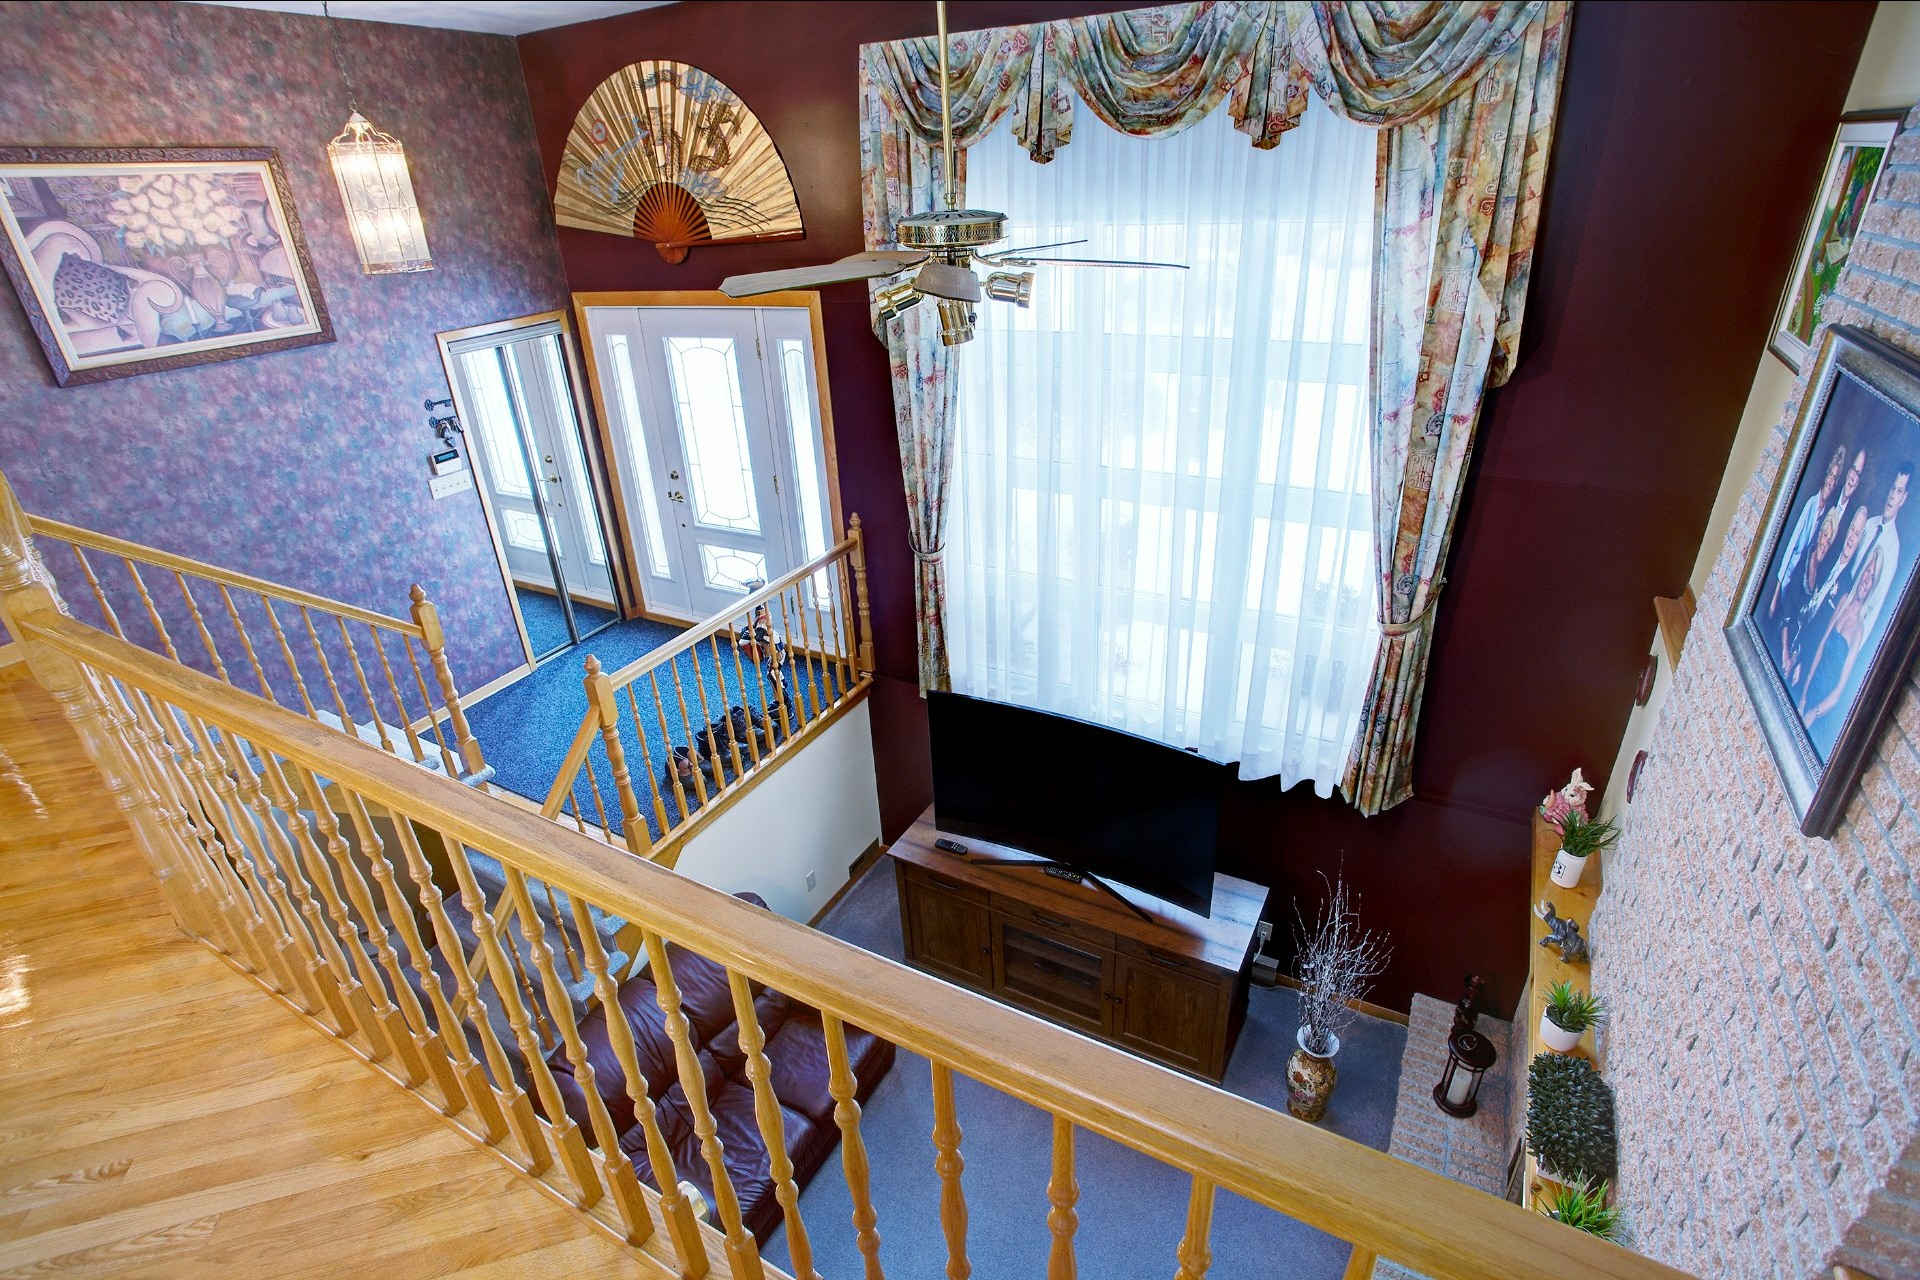 image 5 - House For sale Châteauguay - 10 rooms